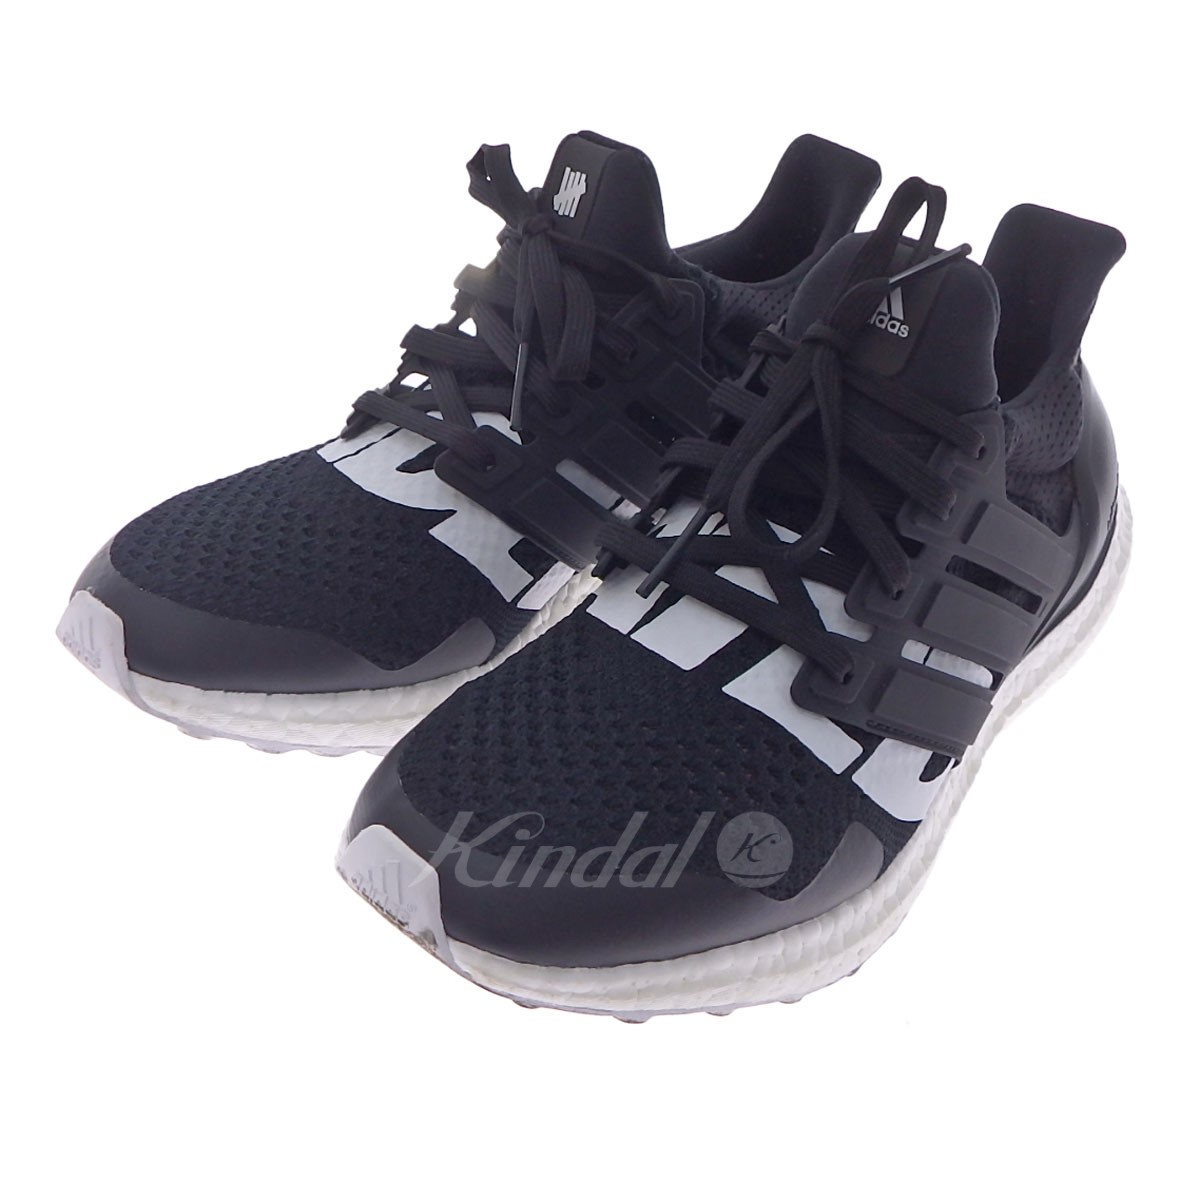 pretty nice d3507 ee630 adidas Originals X UNDEFEATED B22480 ULTRABOOST sneakers black X white  size: 27 0cm (Adidas originals)